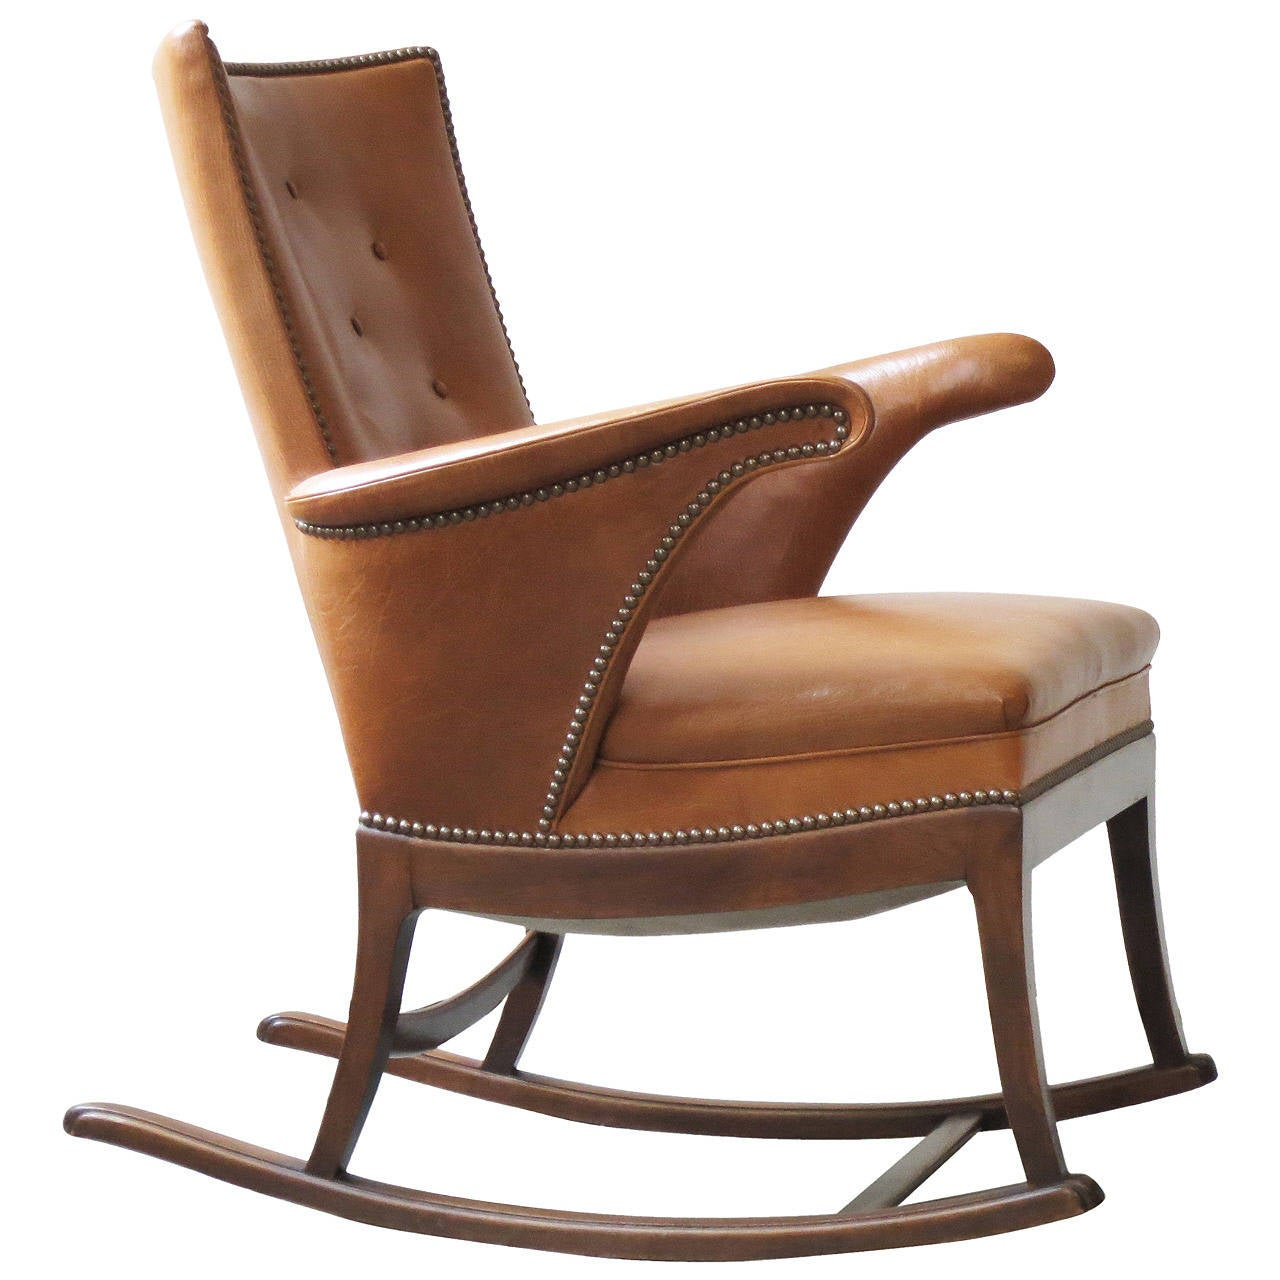 cheap modern rocking chair kitchen bar chairs uk 1930s by frits henningsen for sale at 1stdibs